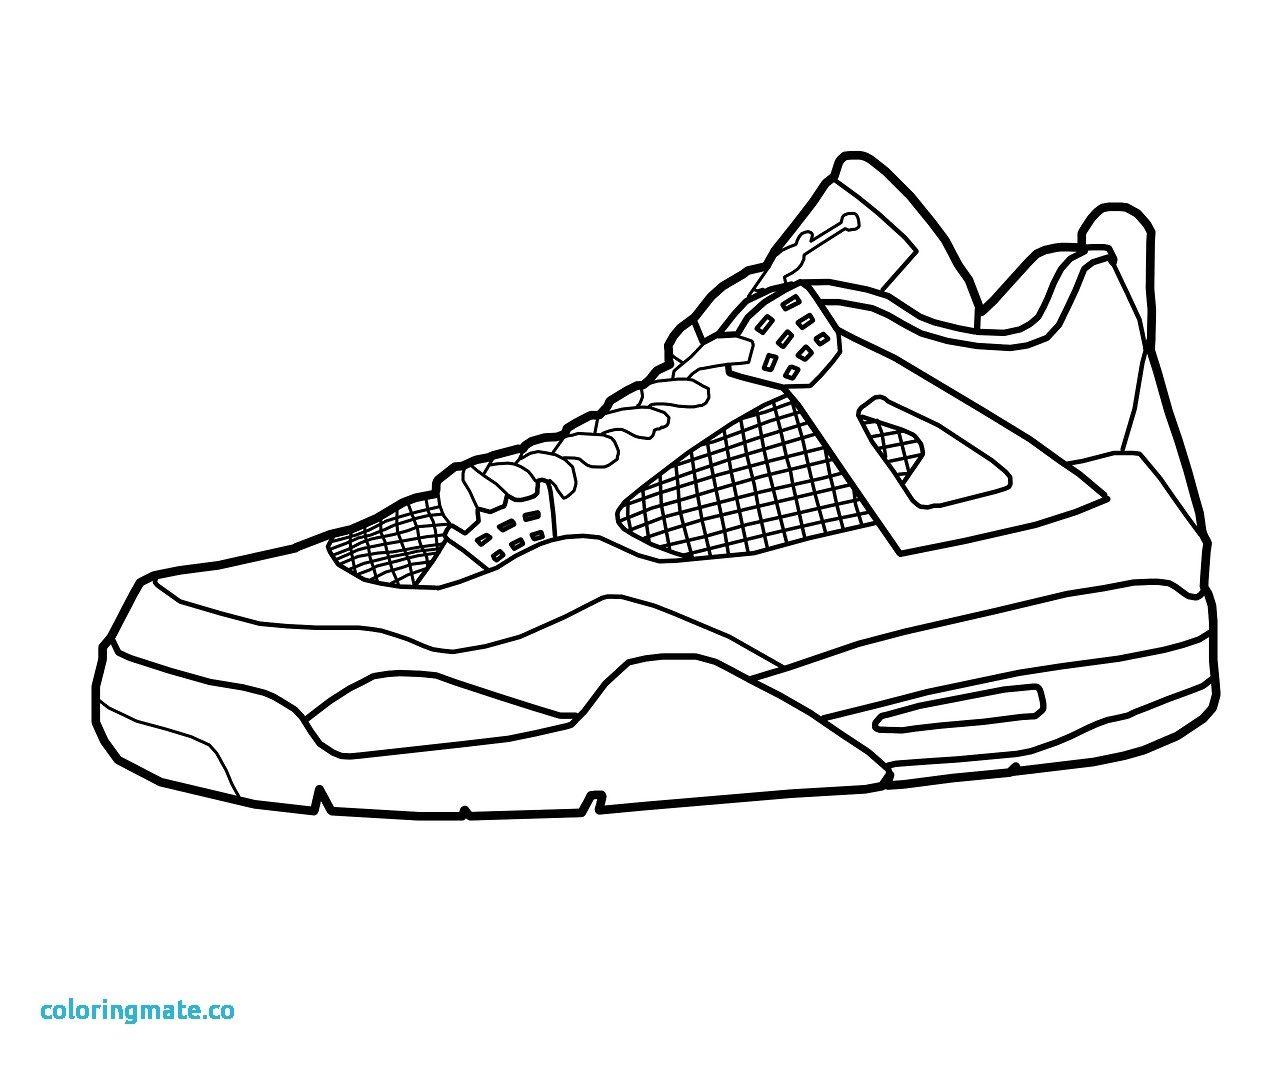 1280x1067 Best Of Jordan Coloring Page Free Coloring Pages Download